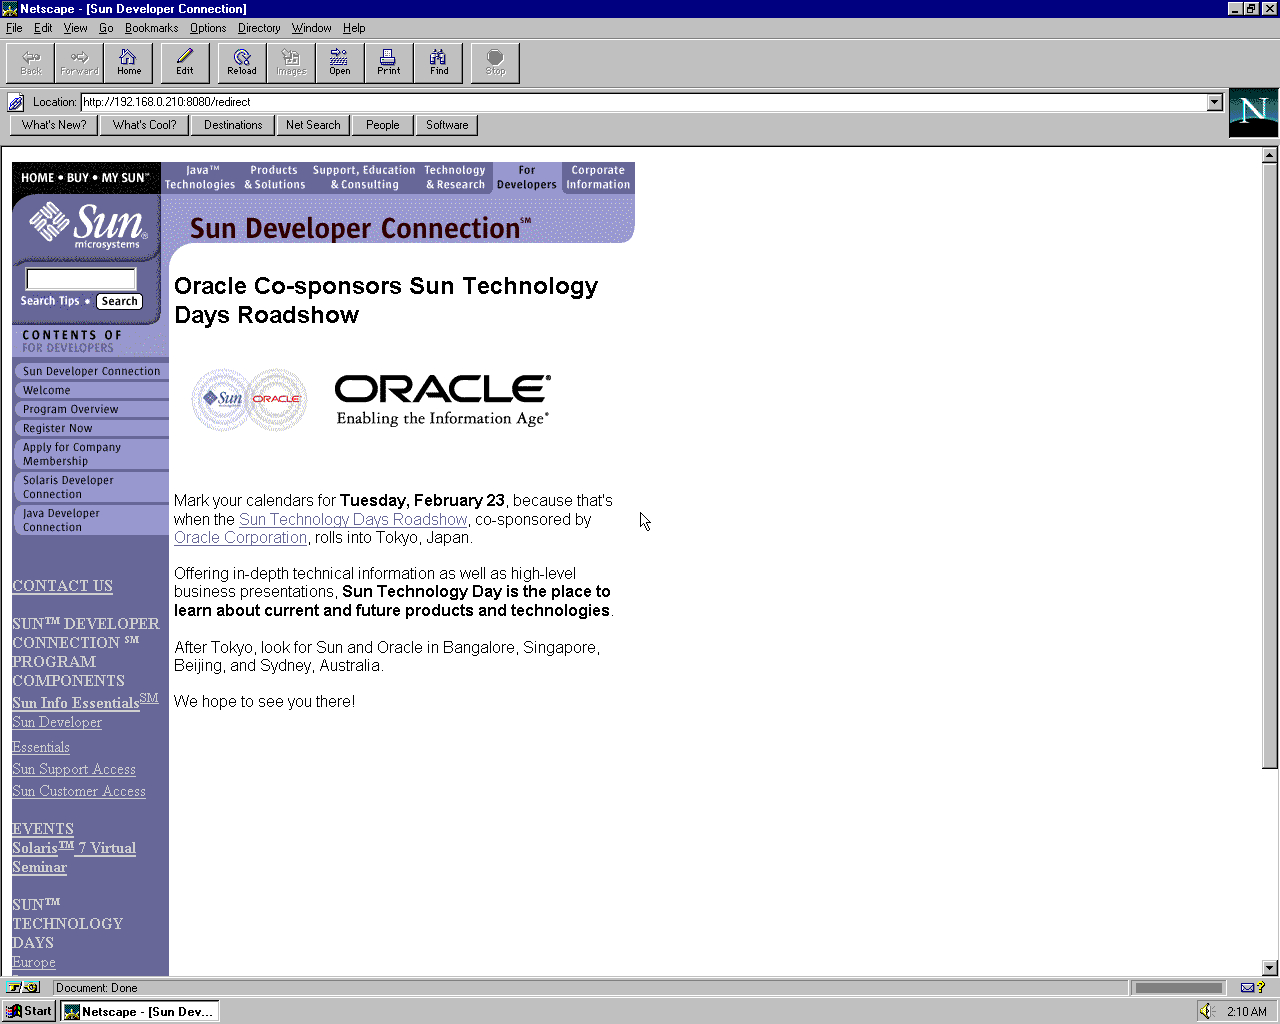 Windows 95 OSR2 x86 with Netscape Navigator 3.0 Gold displaying a page from Sun Microsystems archived at May 01, 1999 at 09:10:26